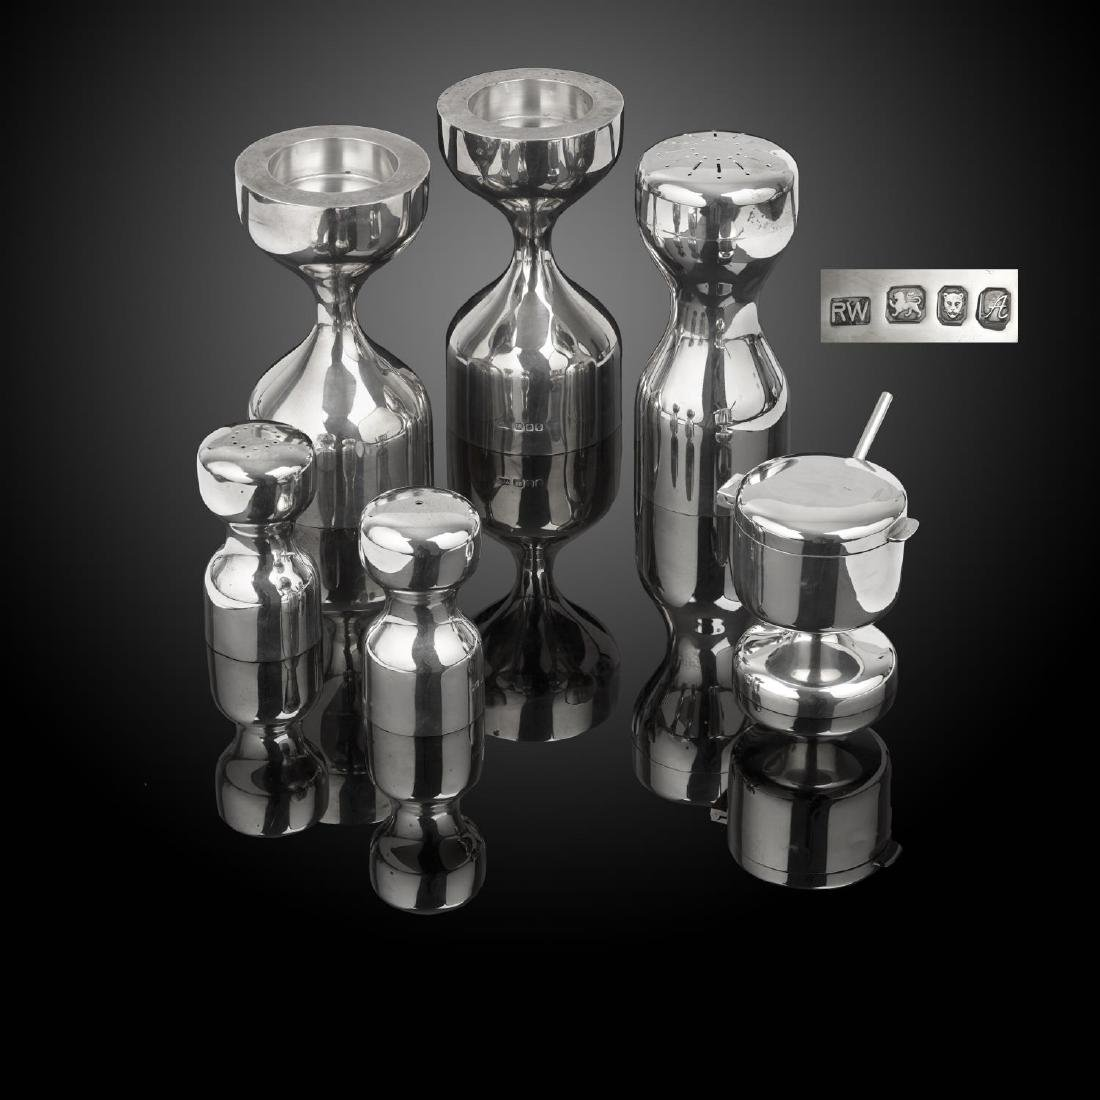 A modern condiment set, caster and pair of candlesticks